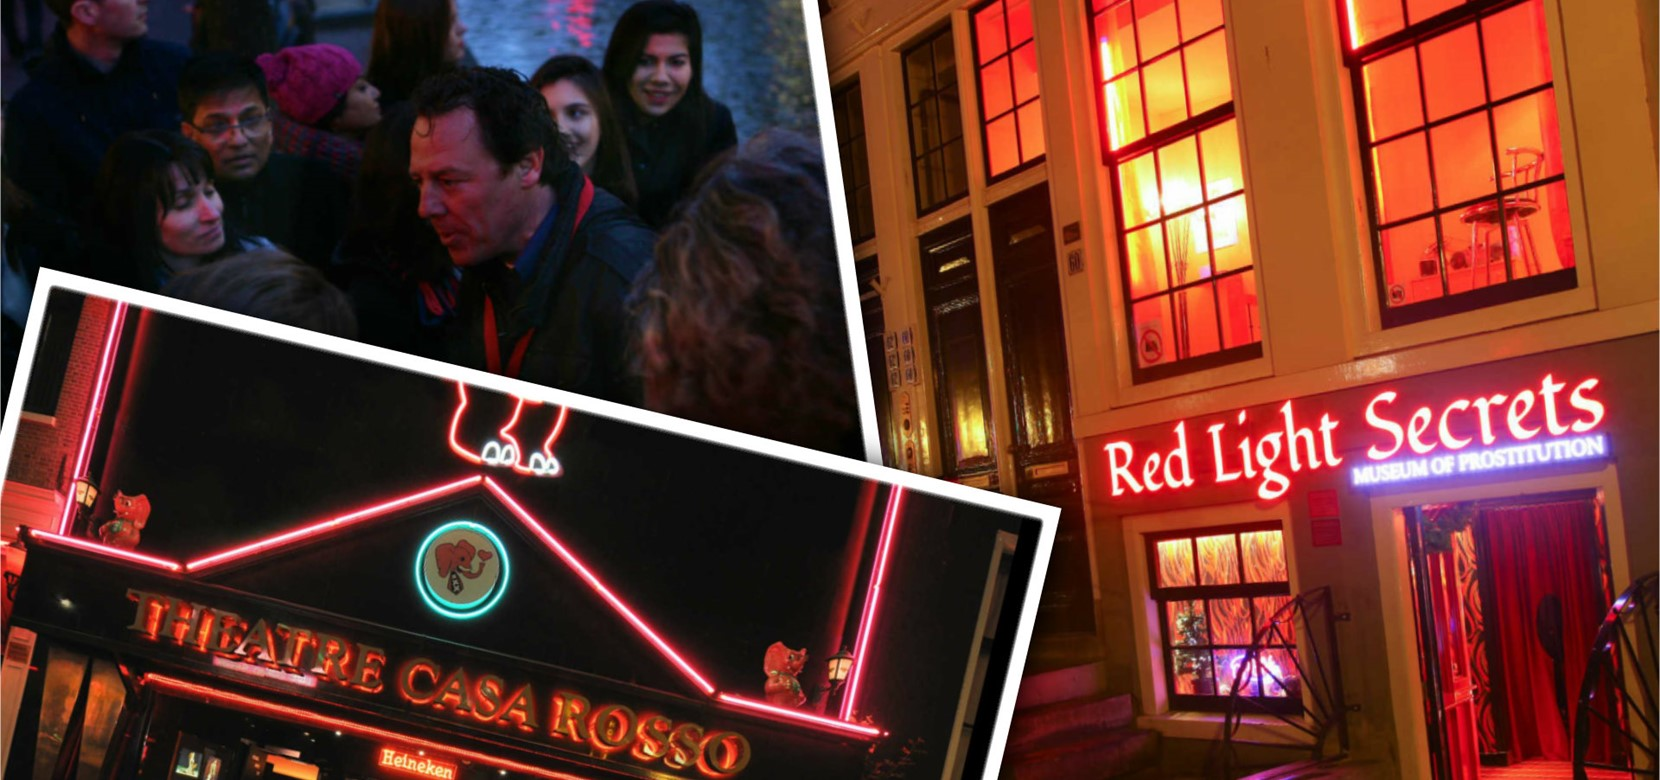 Red Light District Walking Tour + Erotic Museum + Casa Rosso